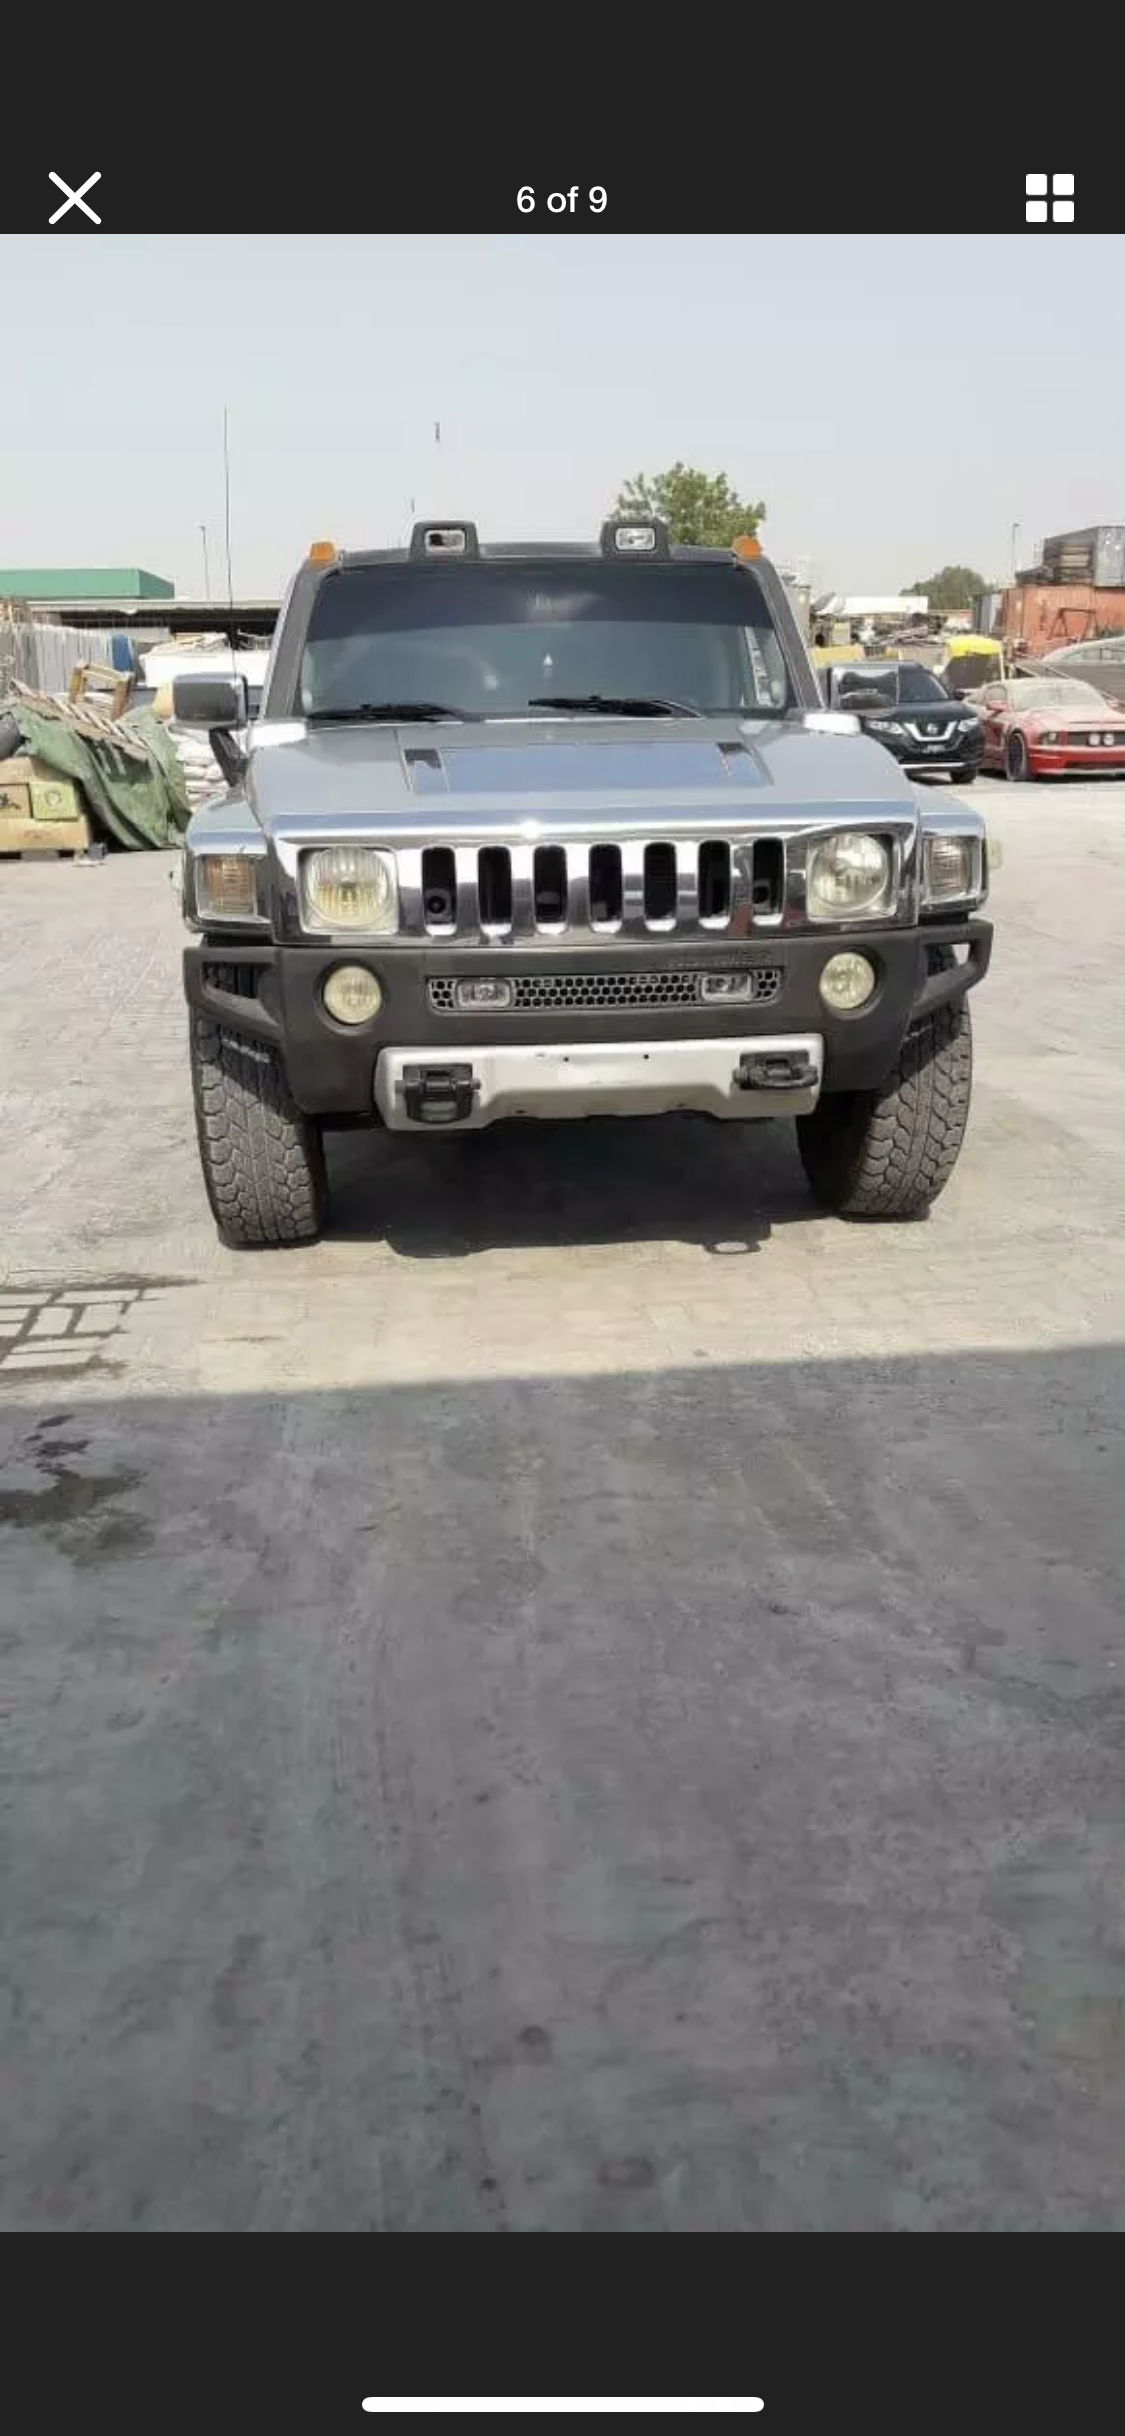 2008 HUMMER H3 3.5 LEFT HAND DRIVE SILVER LHD FRESH IMPORT A For Sale (picture 6 of 6)